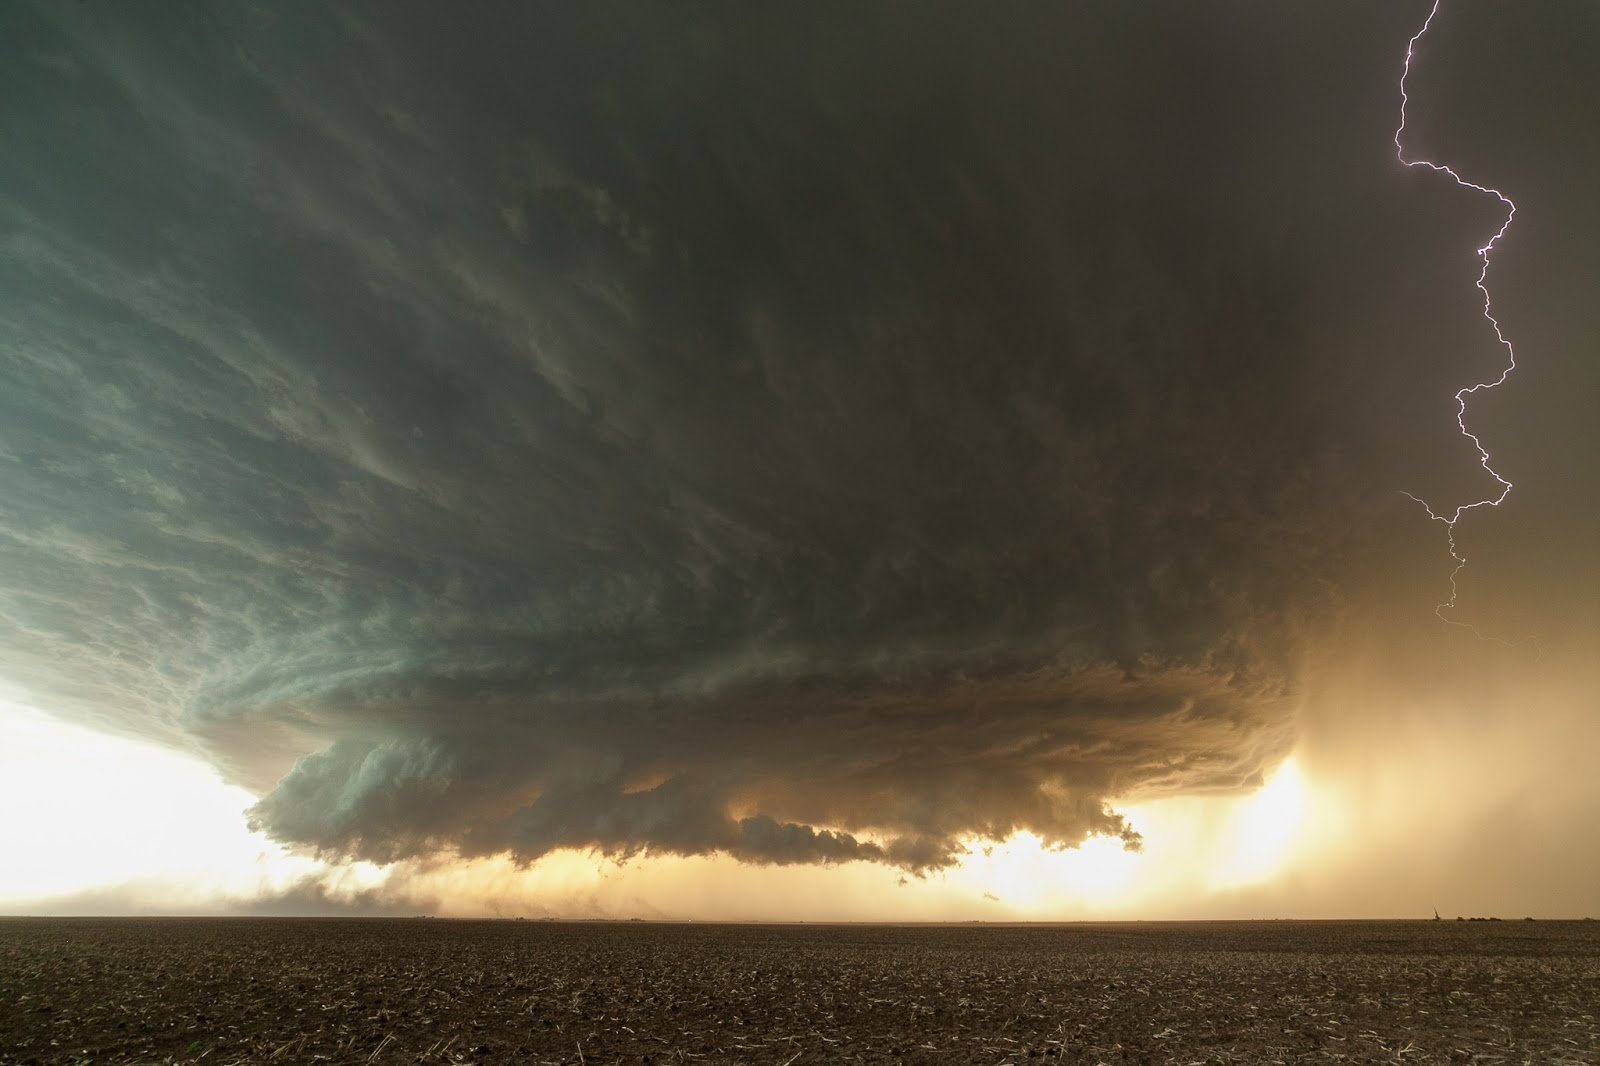 Supercell near Booker, Texas Video and GIF